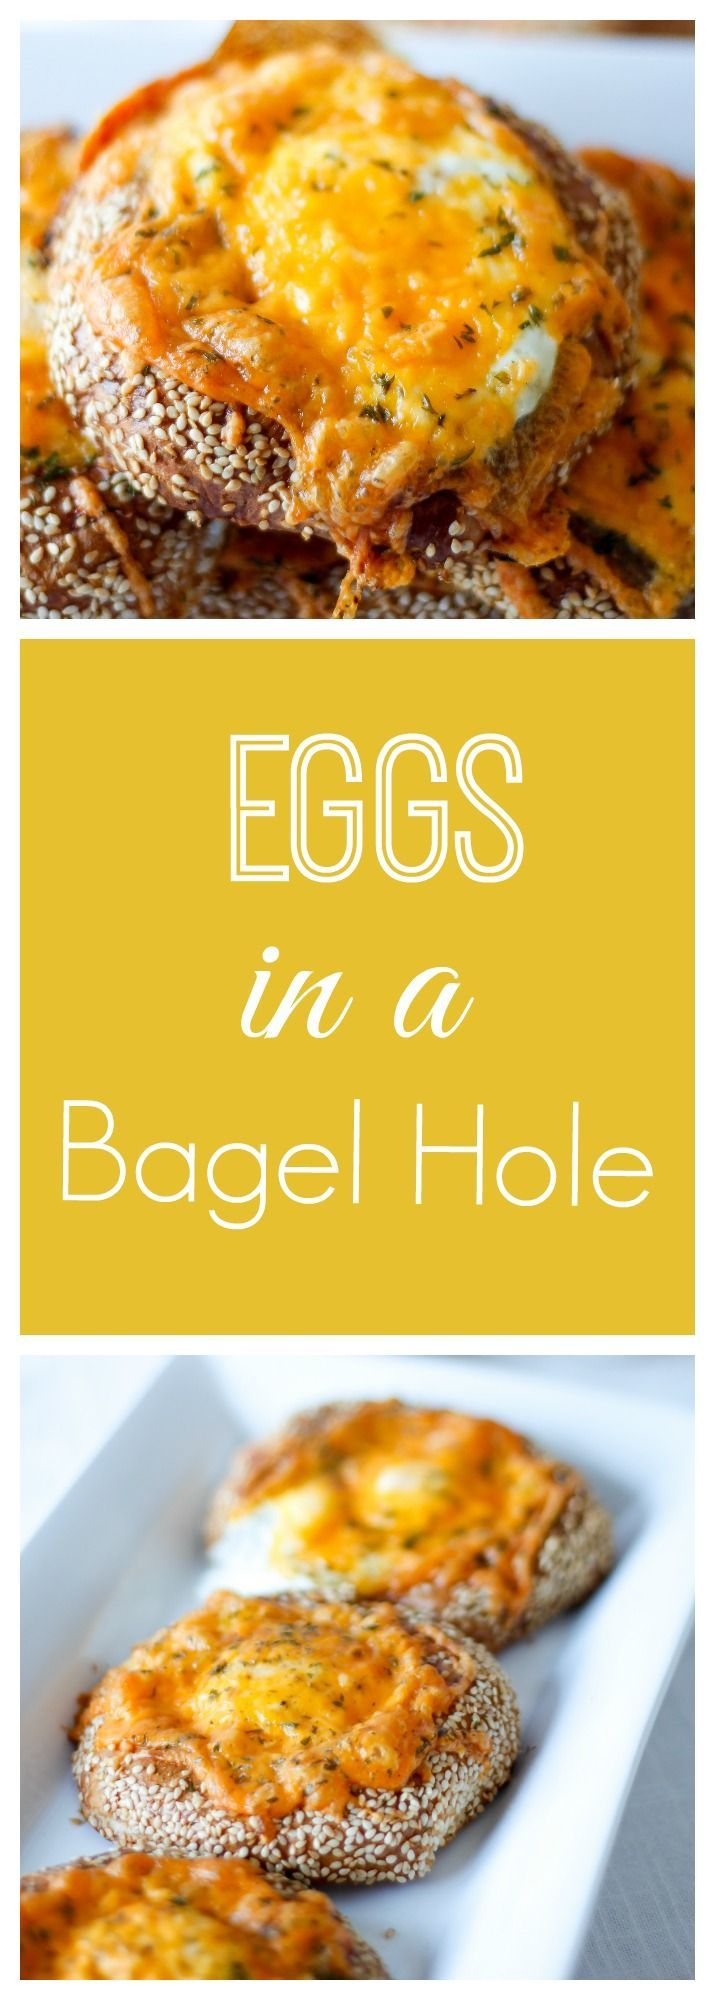 Cook your egg into a bagel hole and voila! A much simpler and faster way to get your perfect breakfast on the table. Easy to make, delicious all your family will love it . Find the recipe here : http://www.nobletandem.com/egg-bagel-hole/